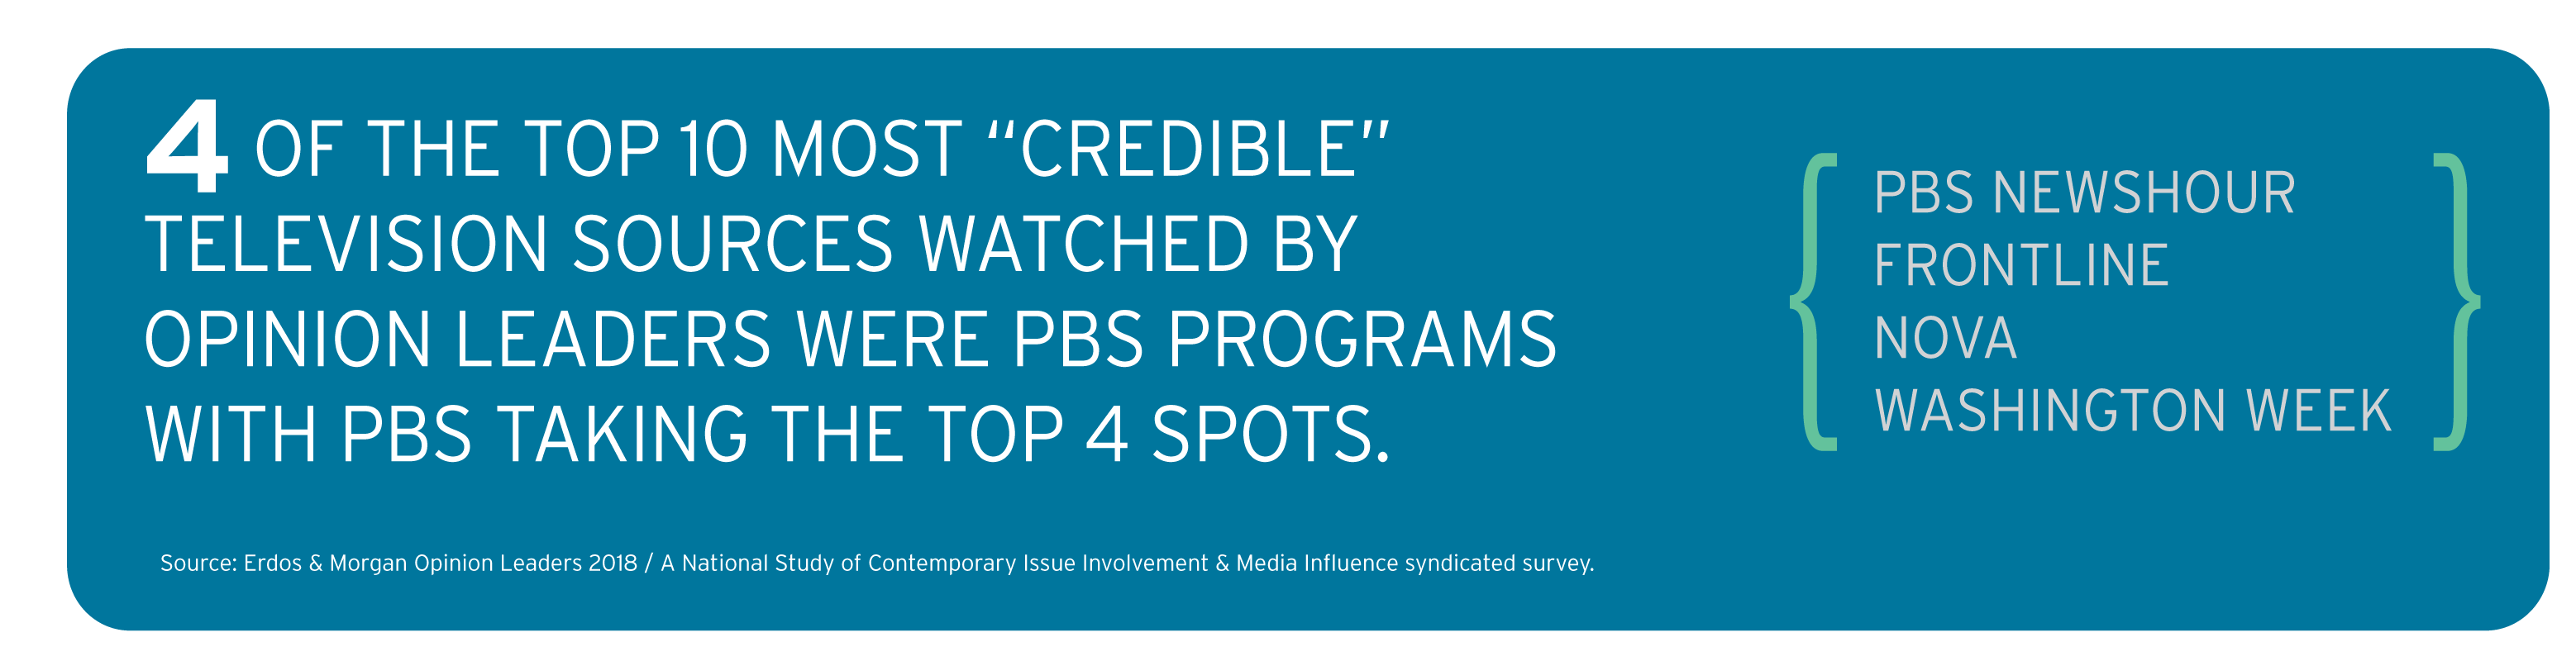 PBS Most Credible